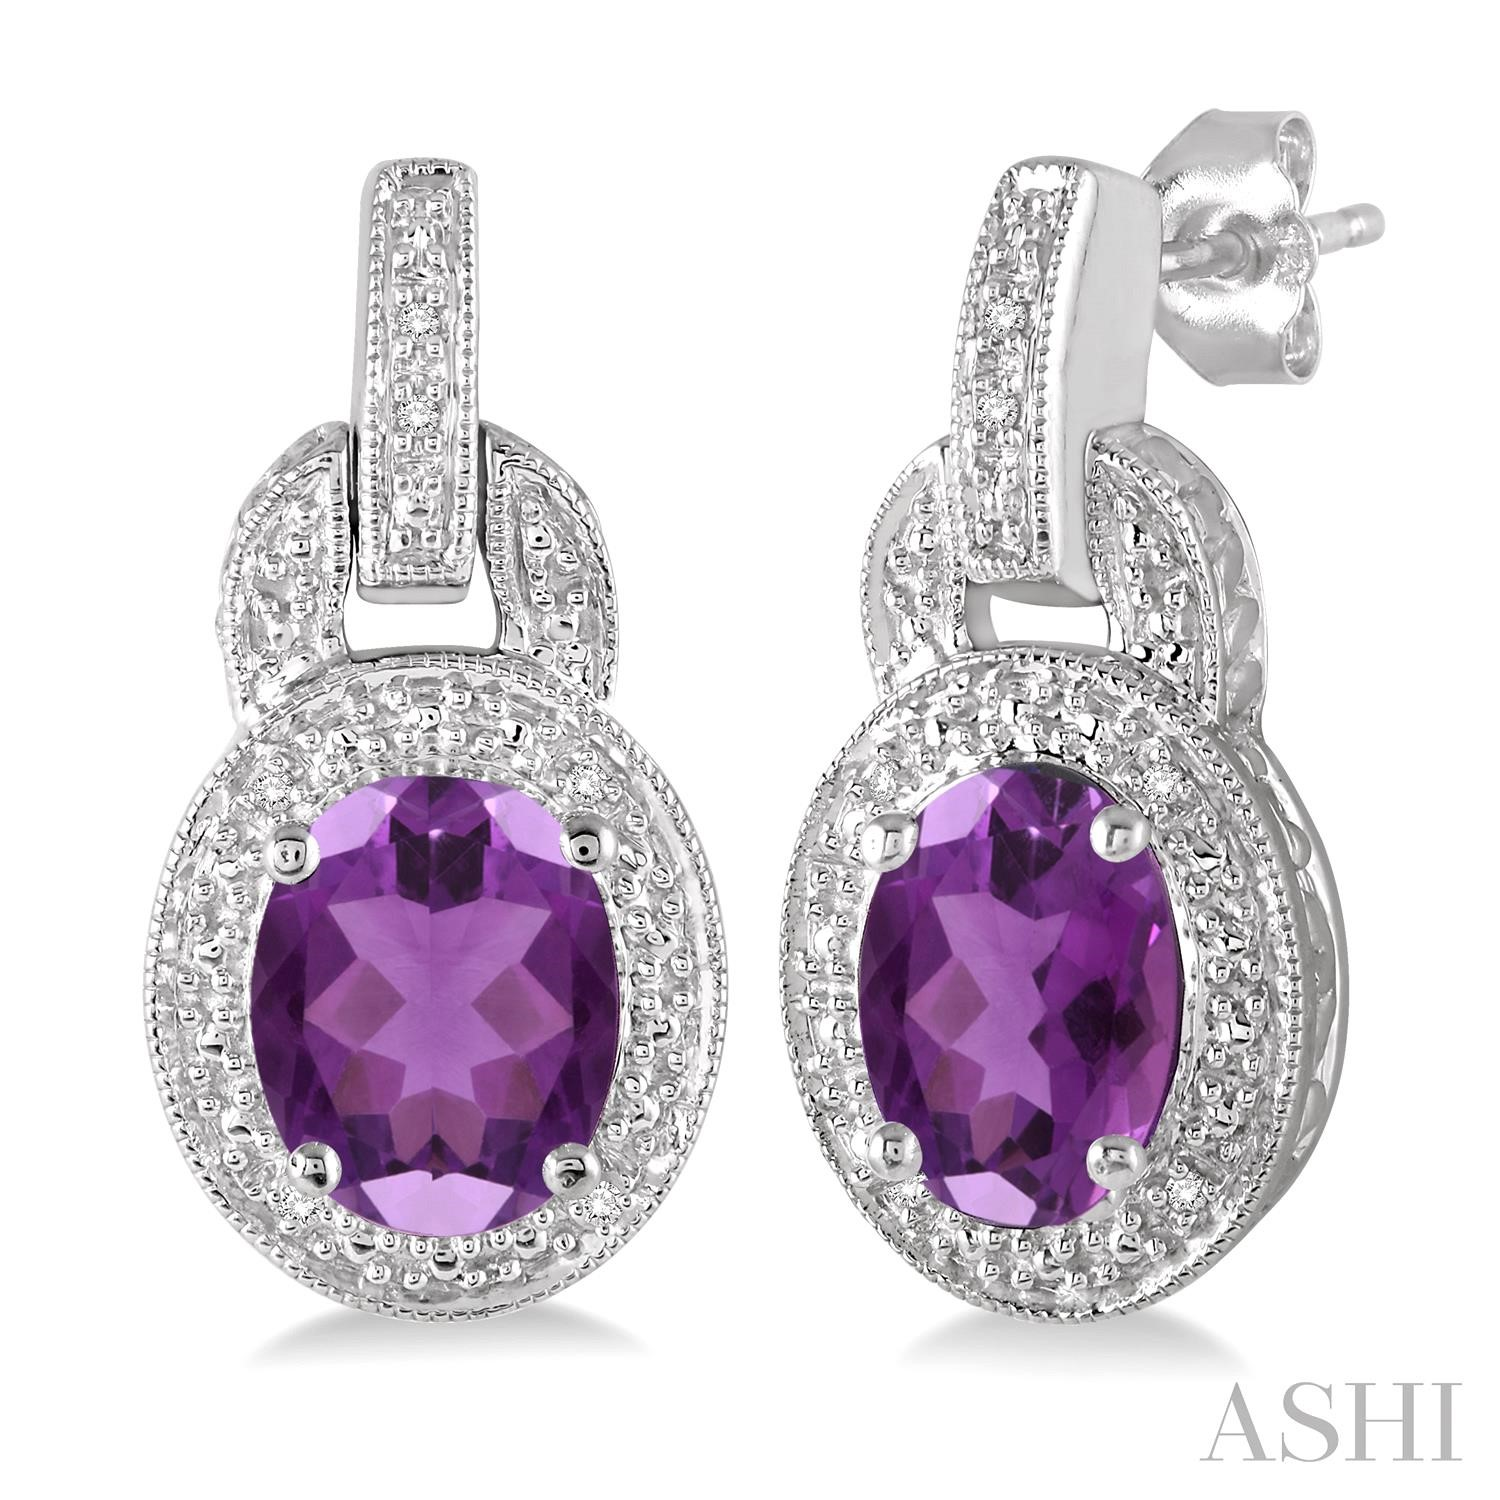 Oval Shape Silver Gemstone & Diamond Earrings